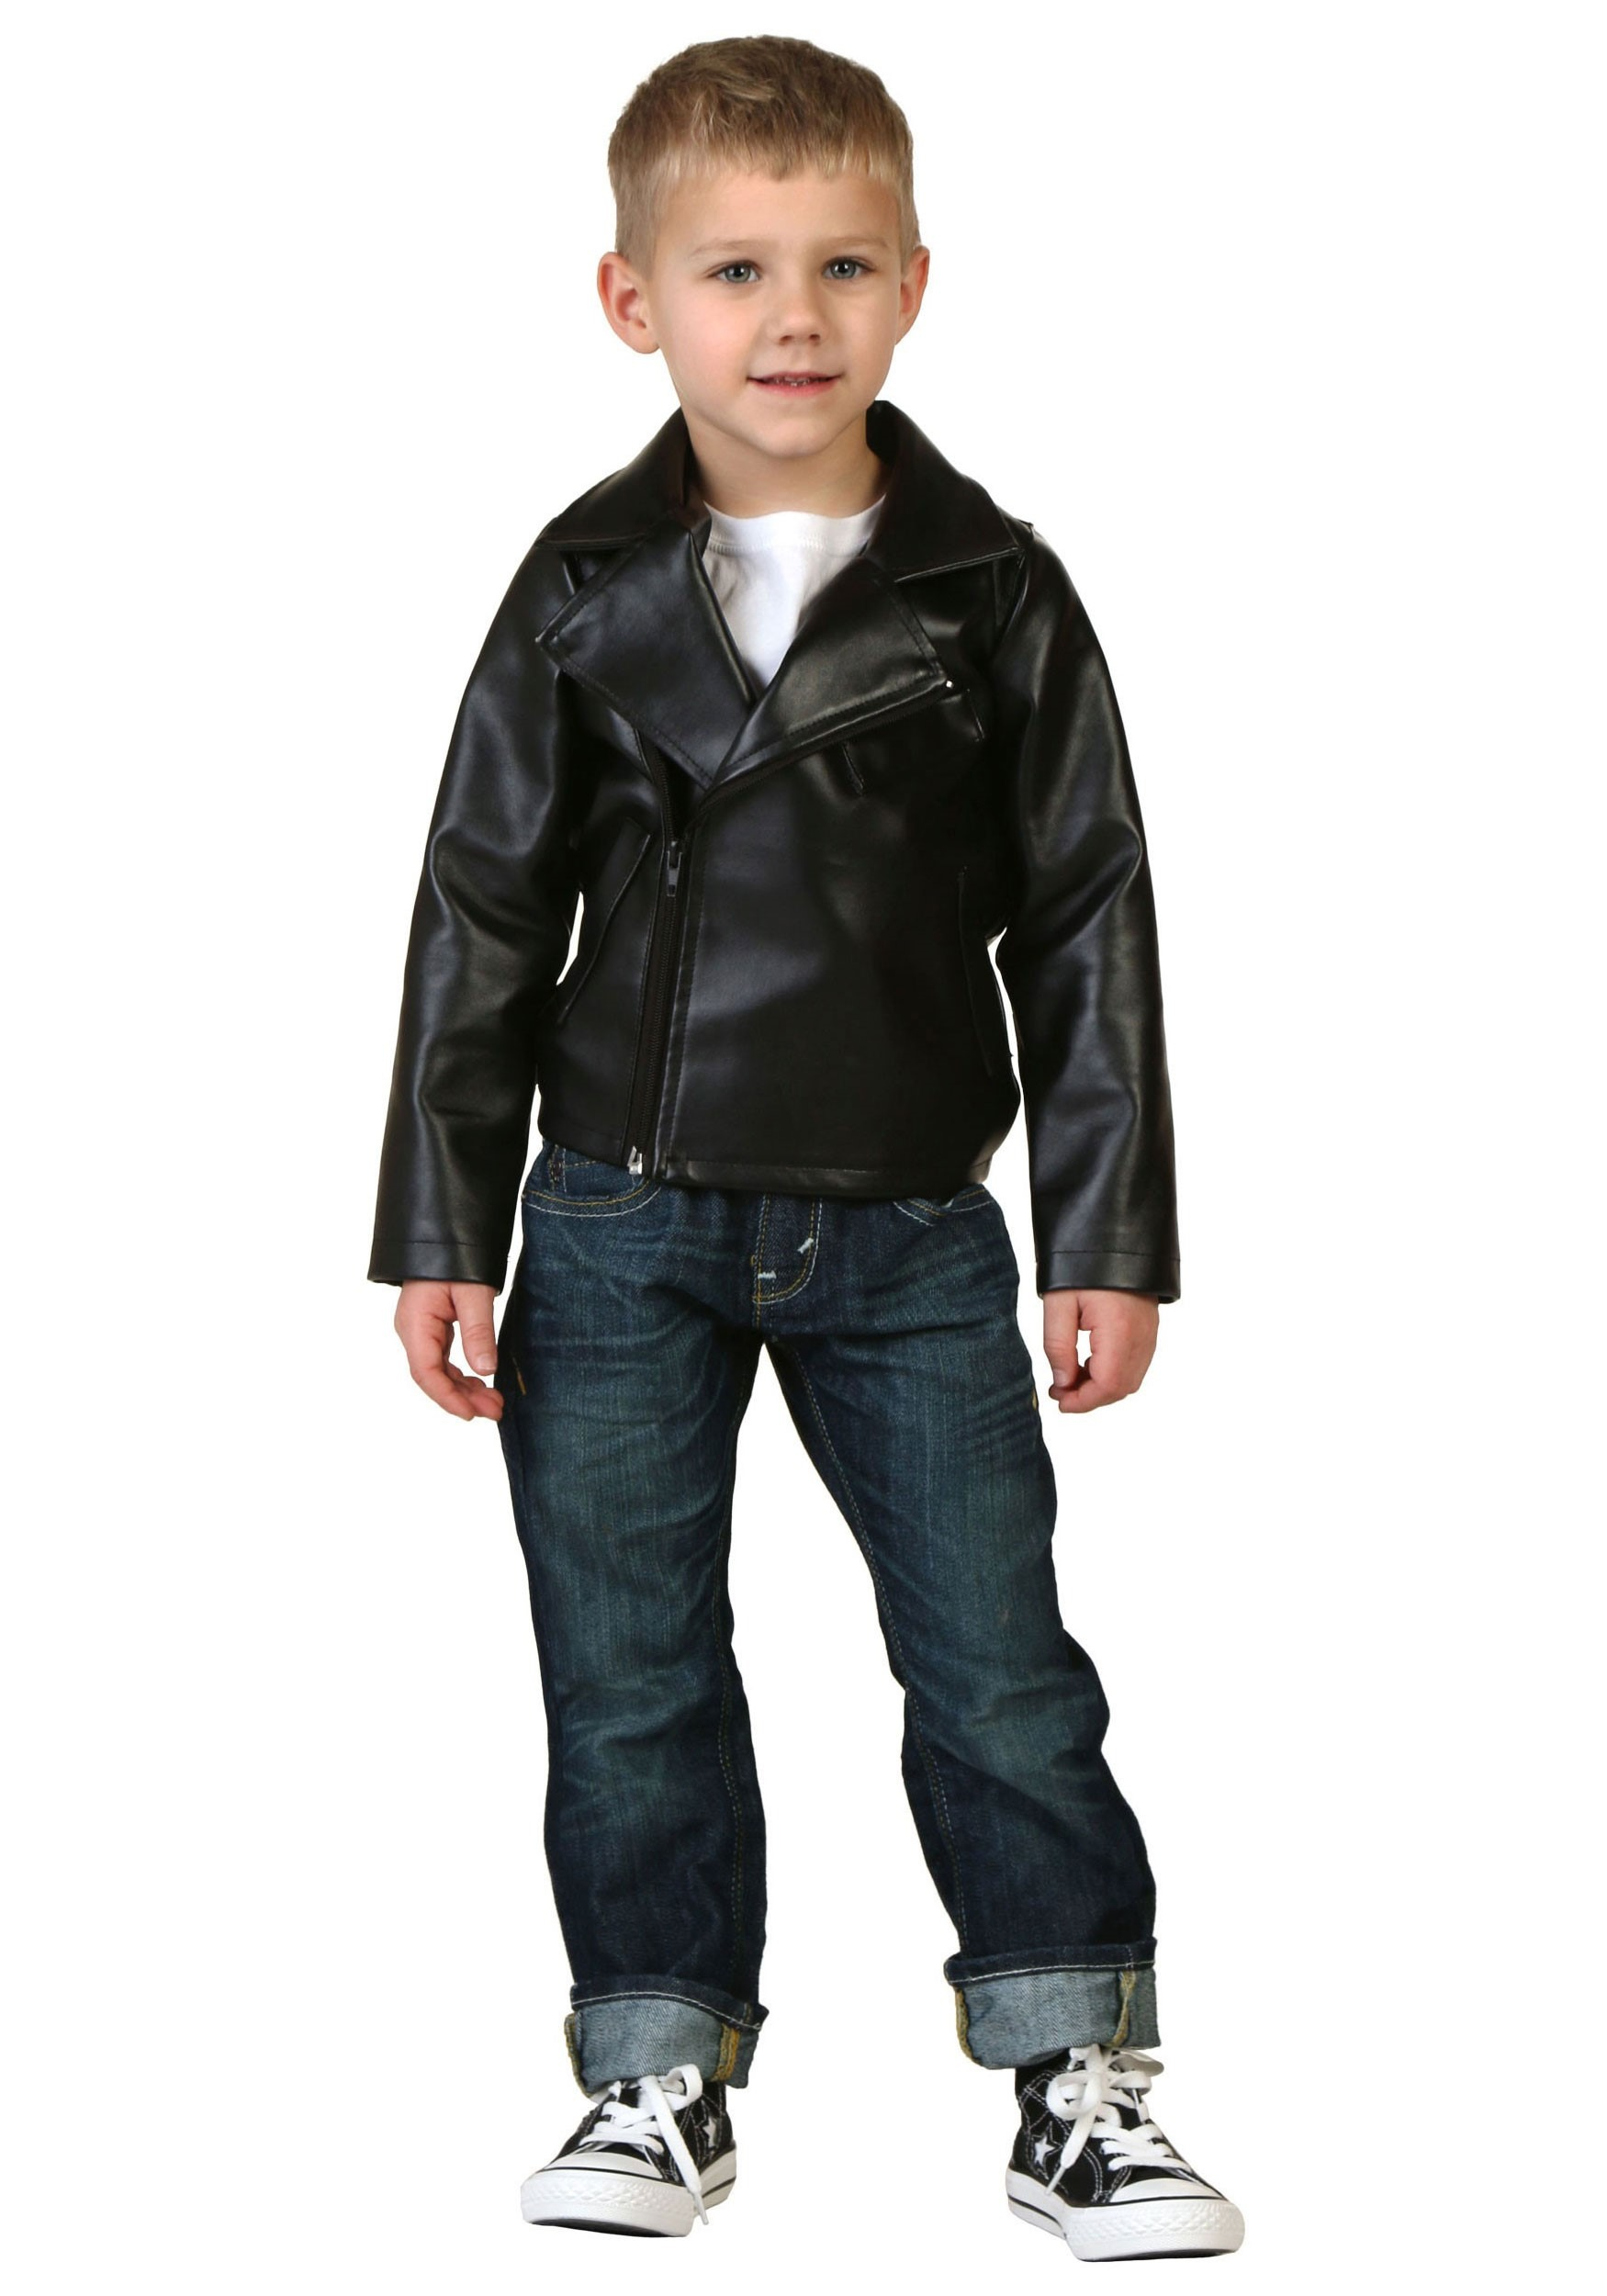 Toddler Grease T-Birds Jacket Costume | Officially licensed costume